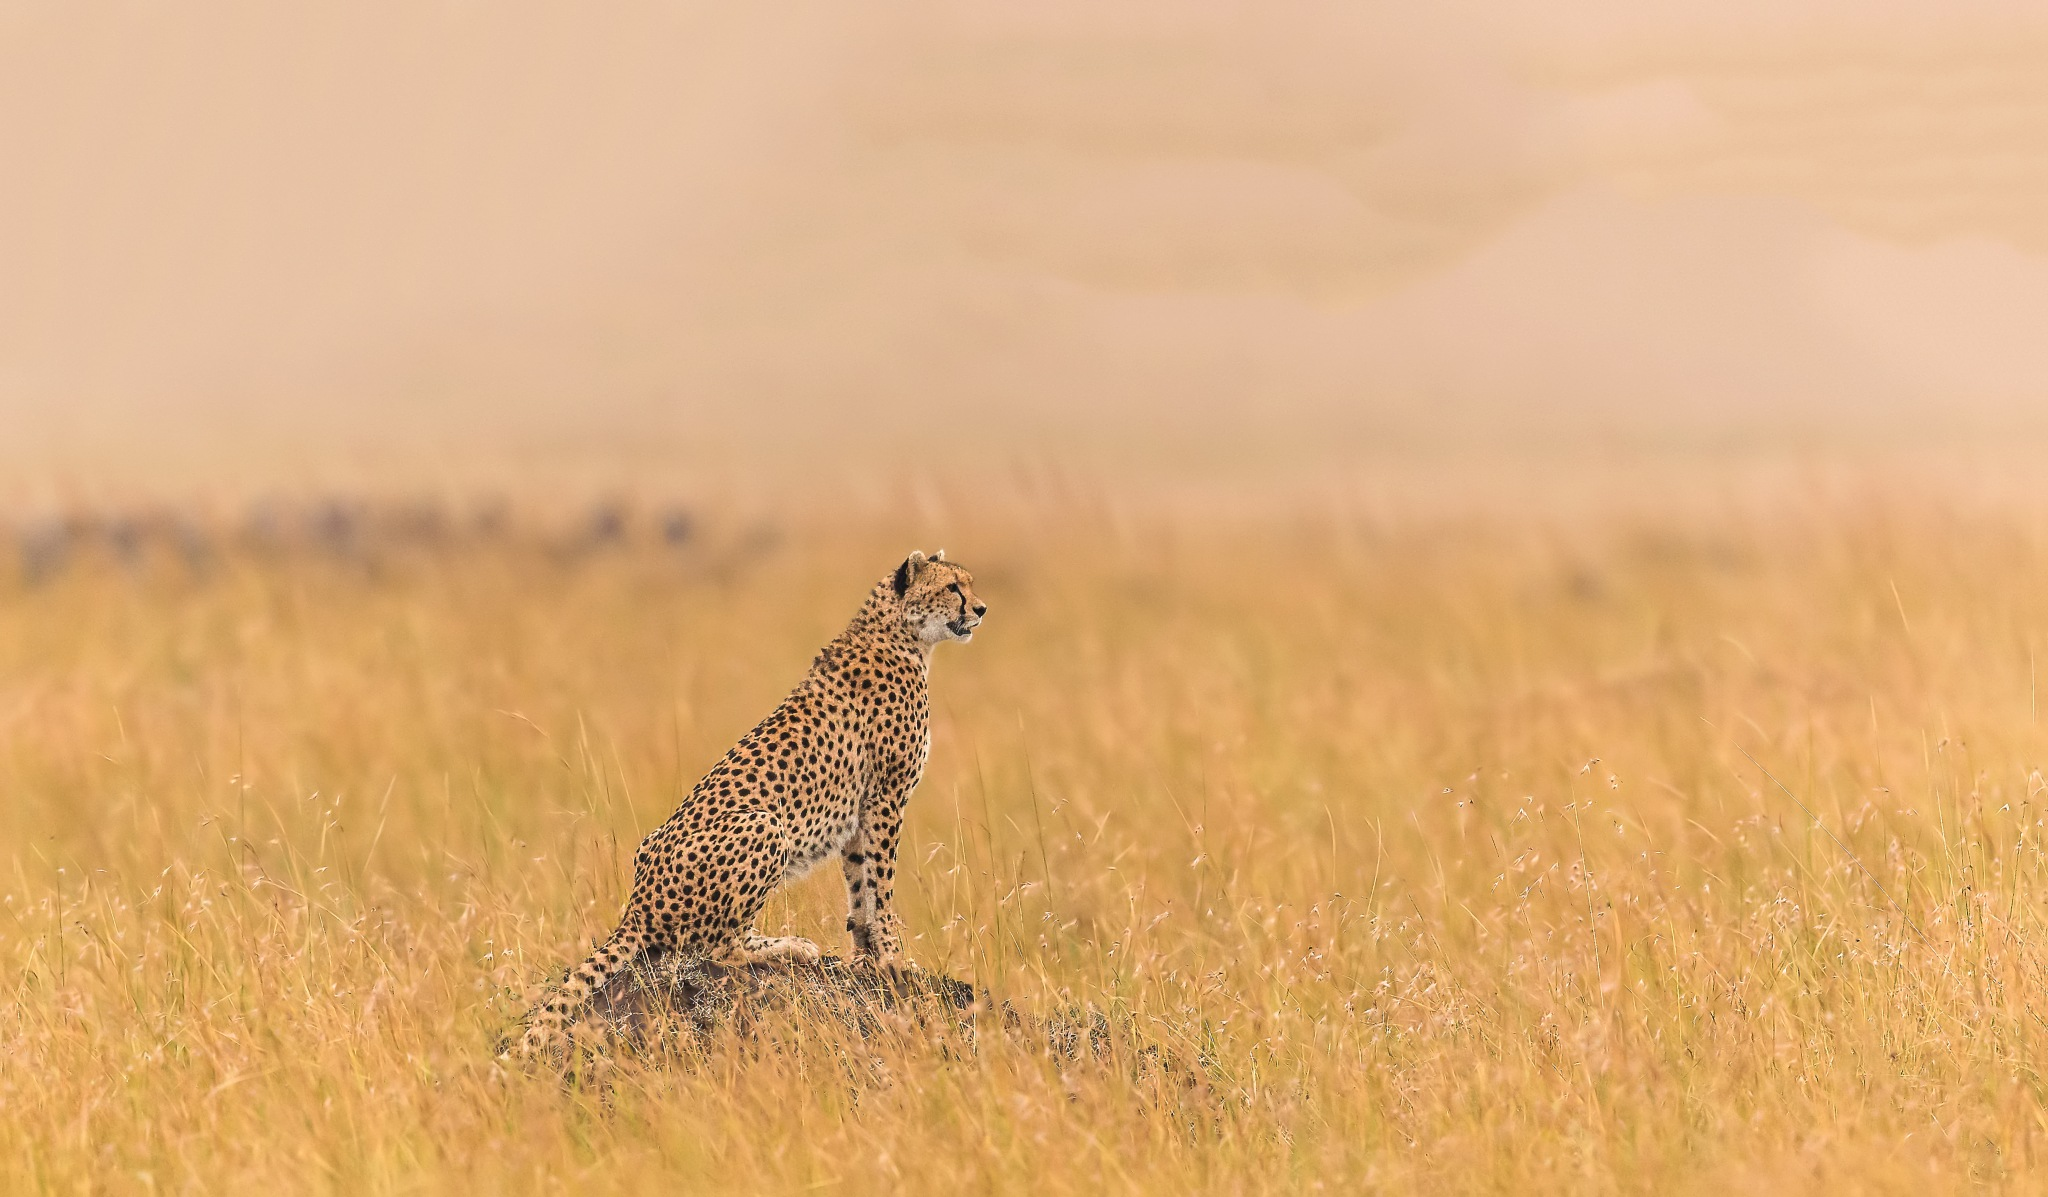 On the watch... by DrSudhir Hasamnis